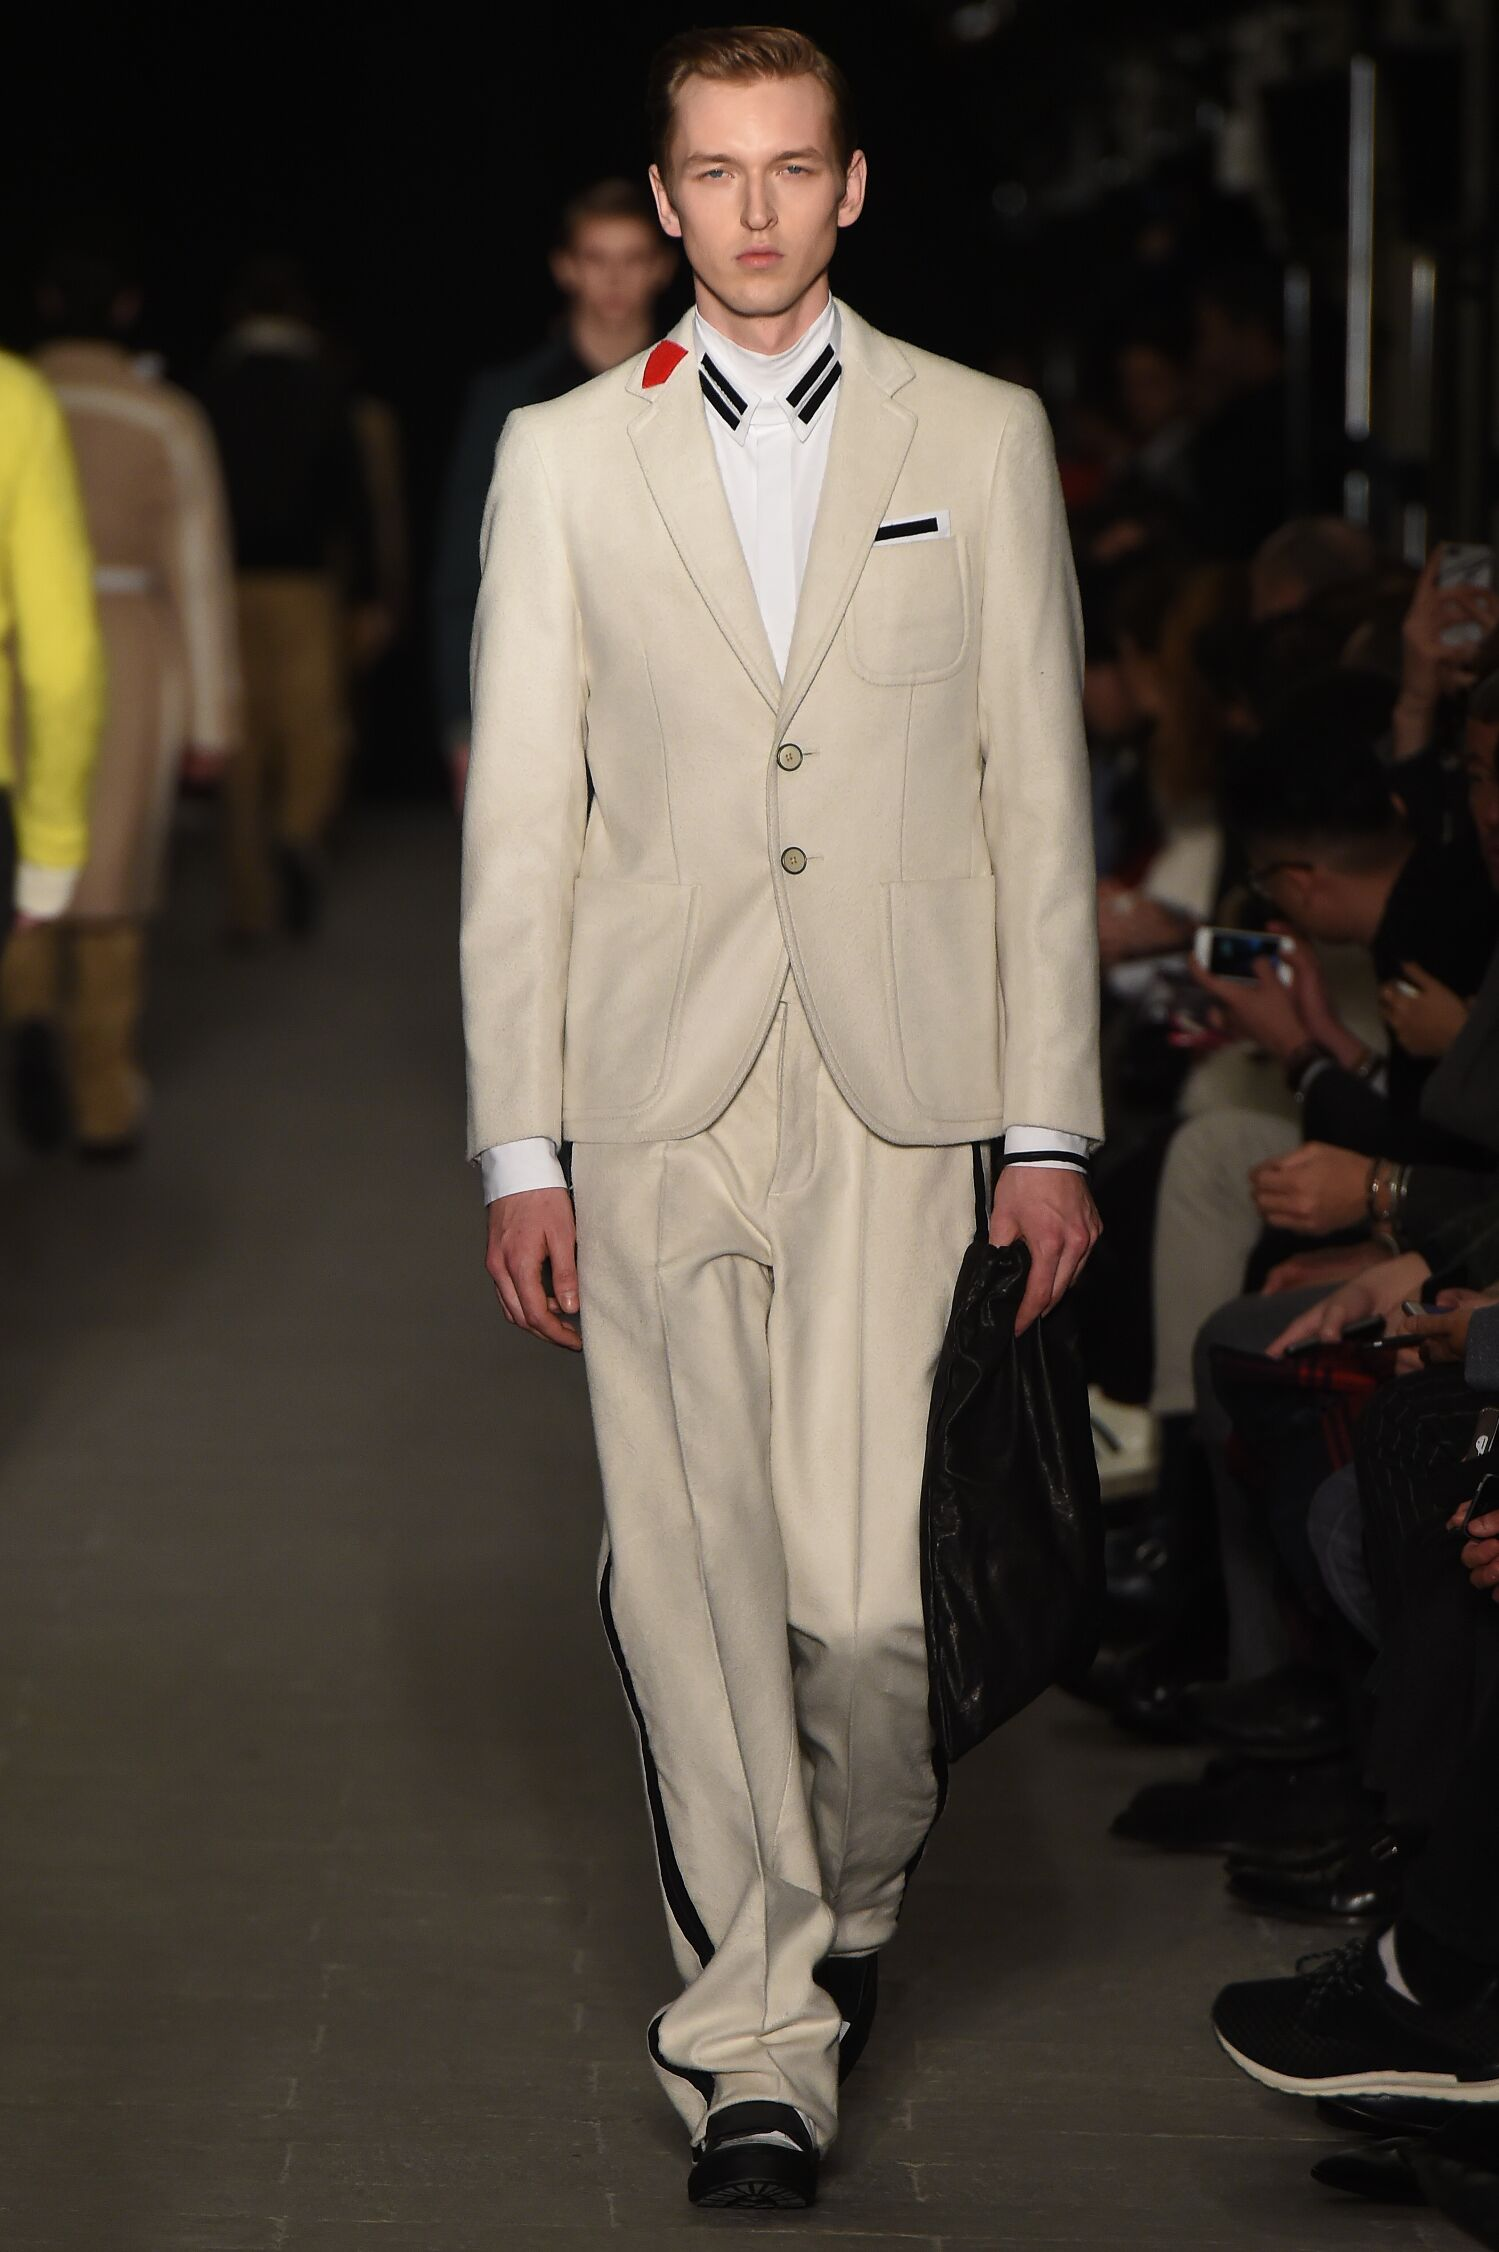 Fall Fashion Man Suit Andrea Pompilio